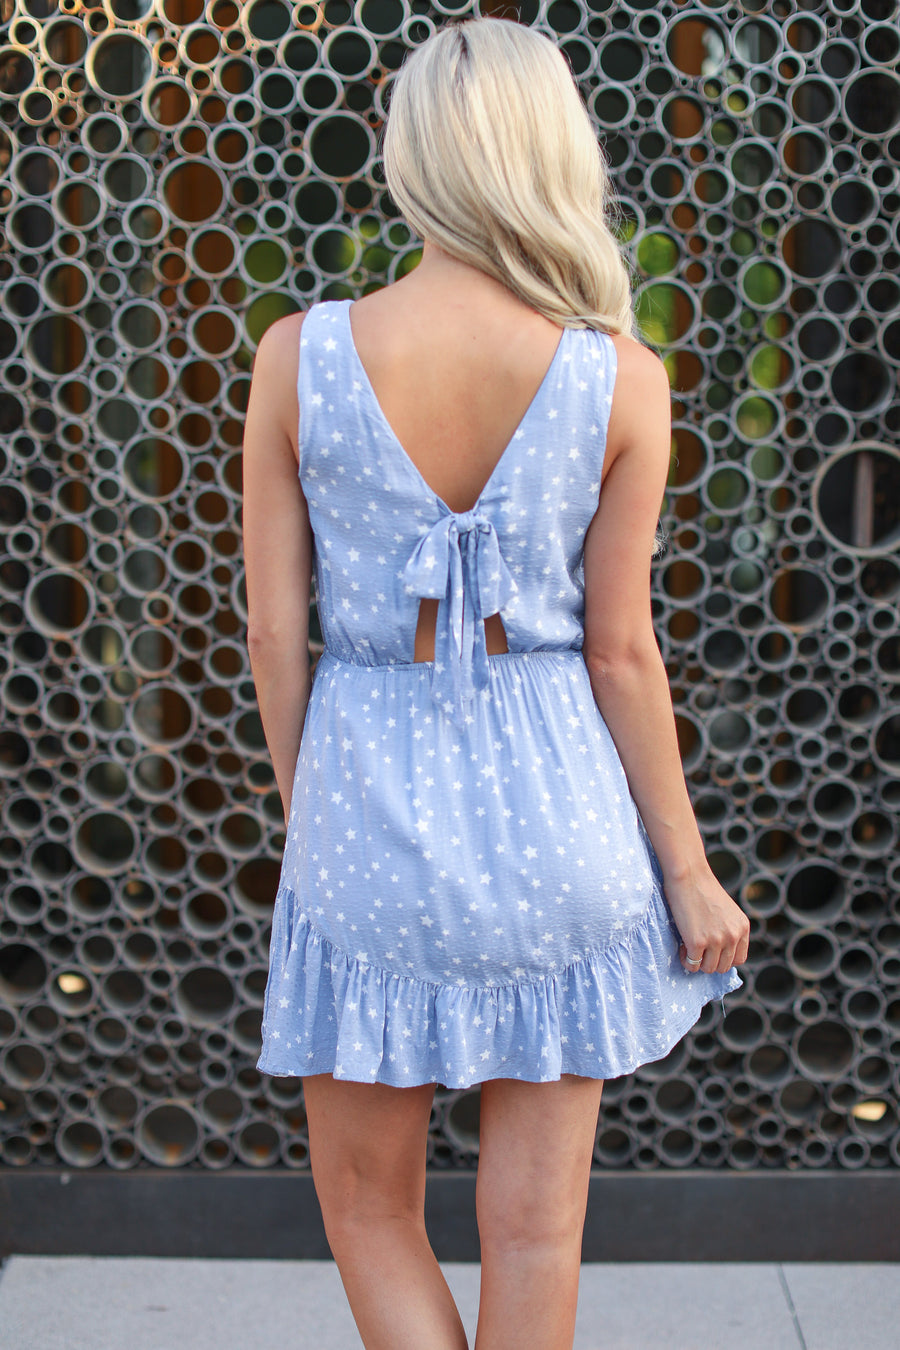 EVERLY Written in the Stars Dress - Light Blue cute trendy dress closet candy